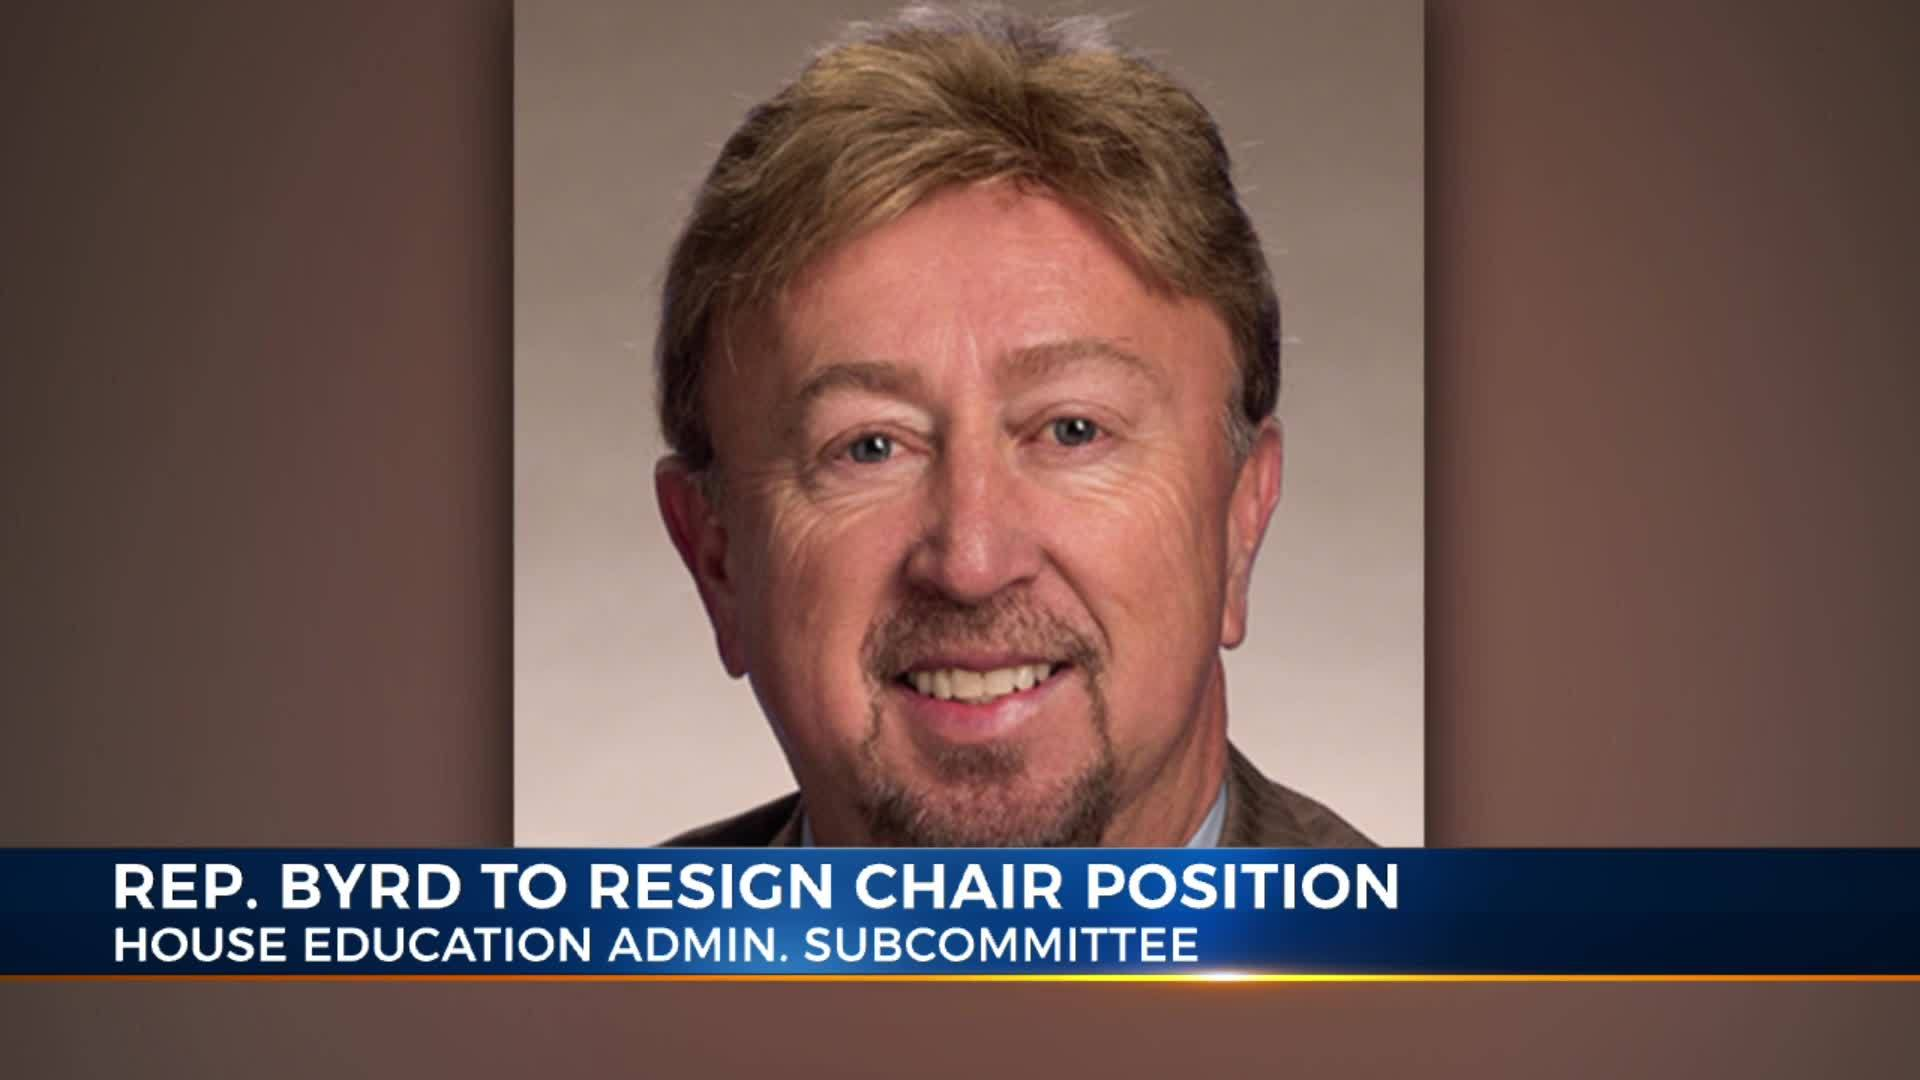 Rep__David_Byrd_agrees_to_resign_as_chai_7_20190328220910